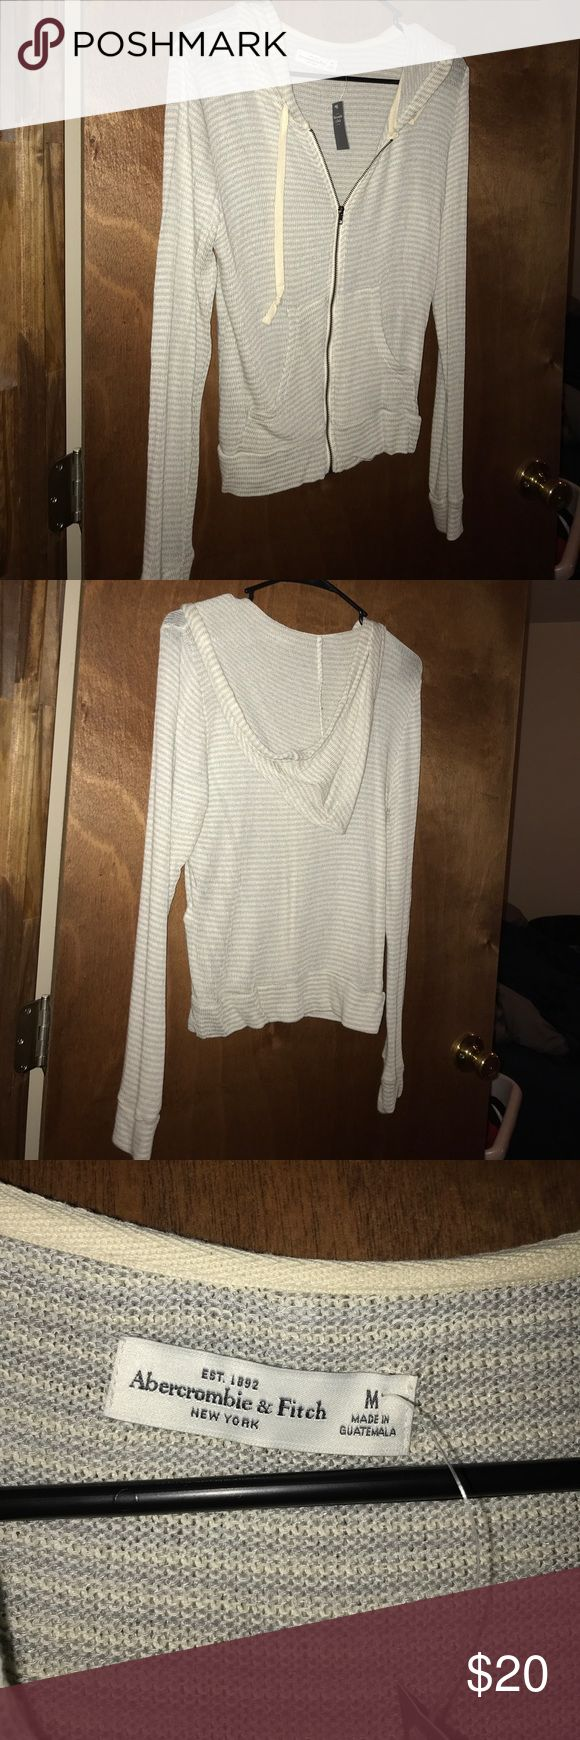 Gray and white striped zip up sweatshirt. long sleeved gray and white striped Abercrombie and Fitch hooded zip up. Very light. Never worn. Abercrombie & Fitch Tops Sweatshirts & Hoodies